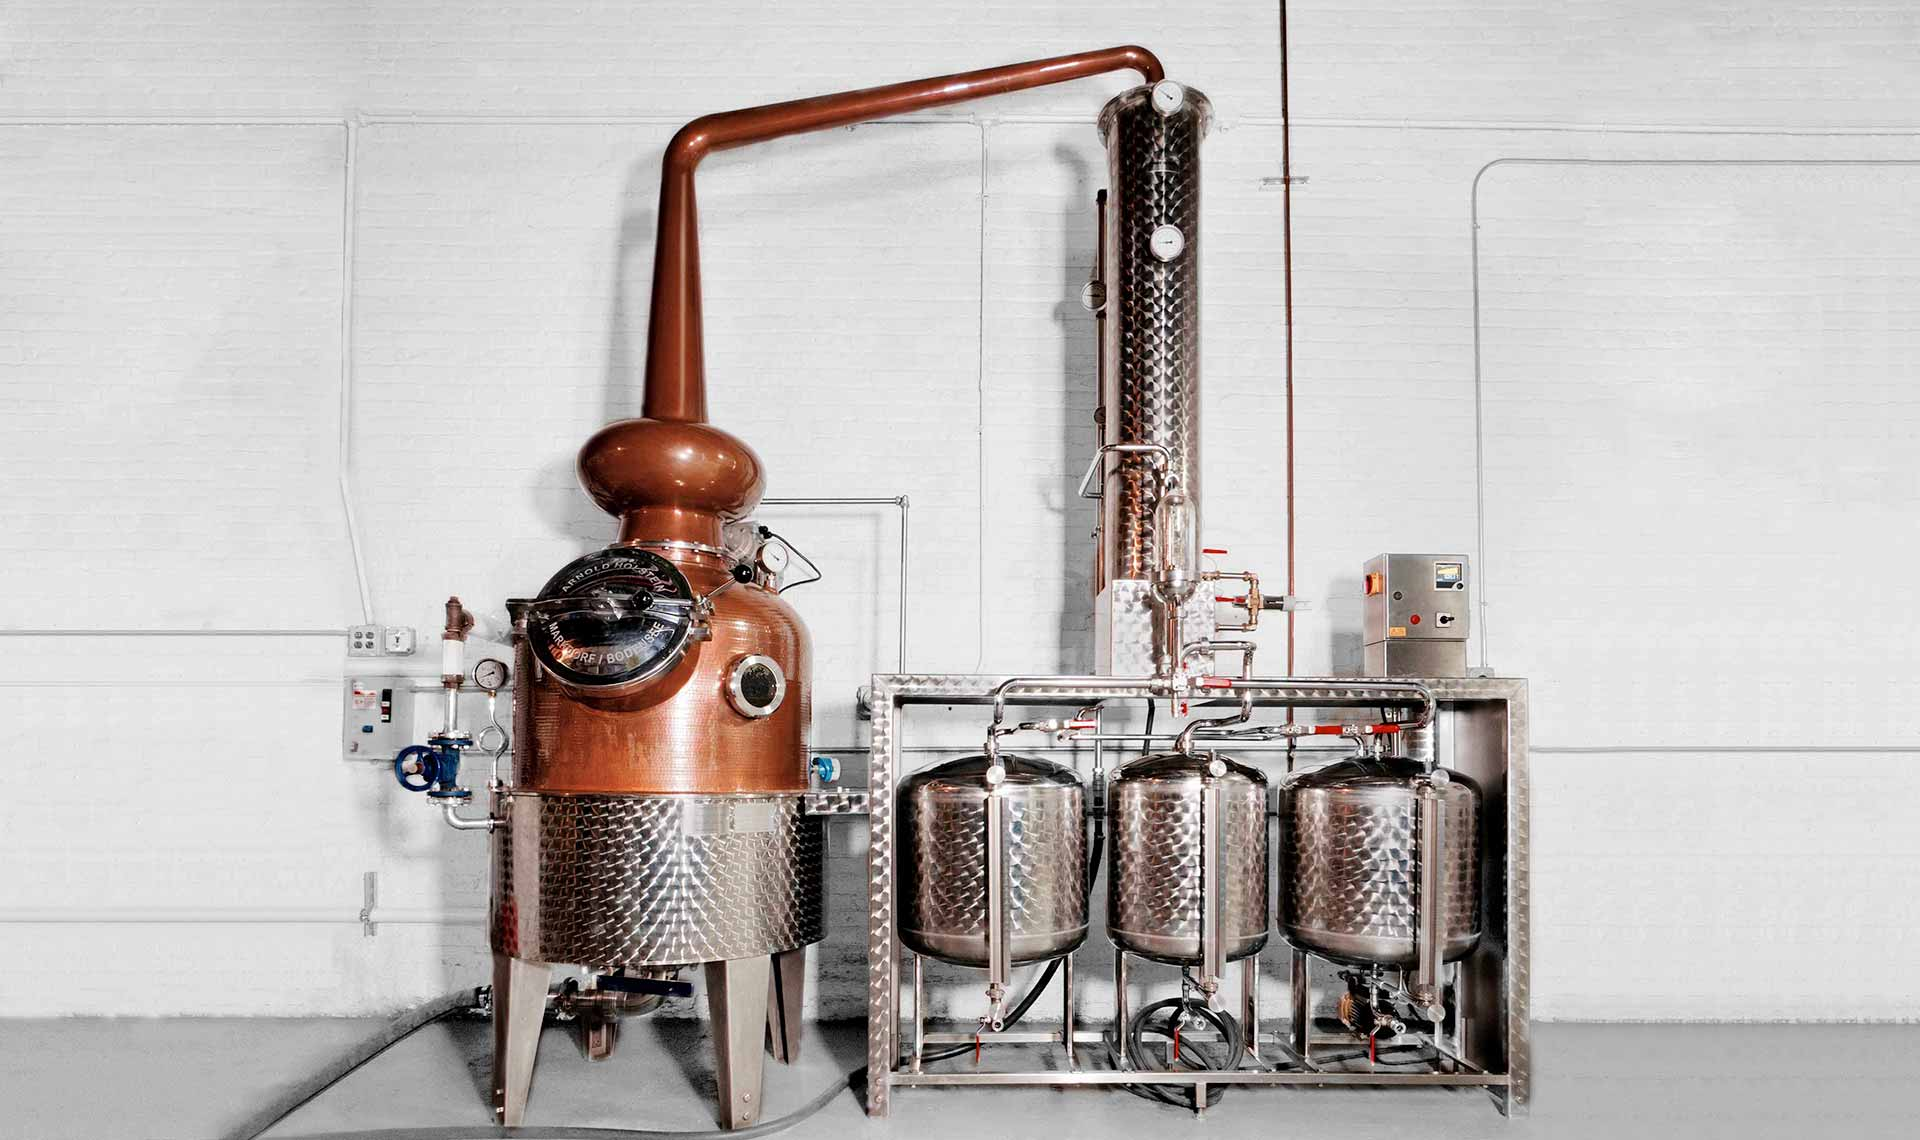 Greenhook Ginsmiths' Custom-Made Copper Still | greenhookgin.com